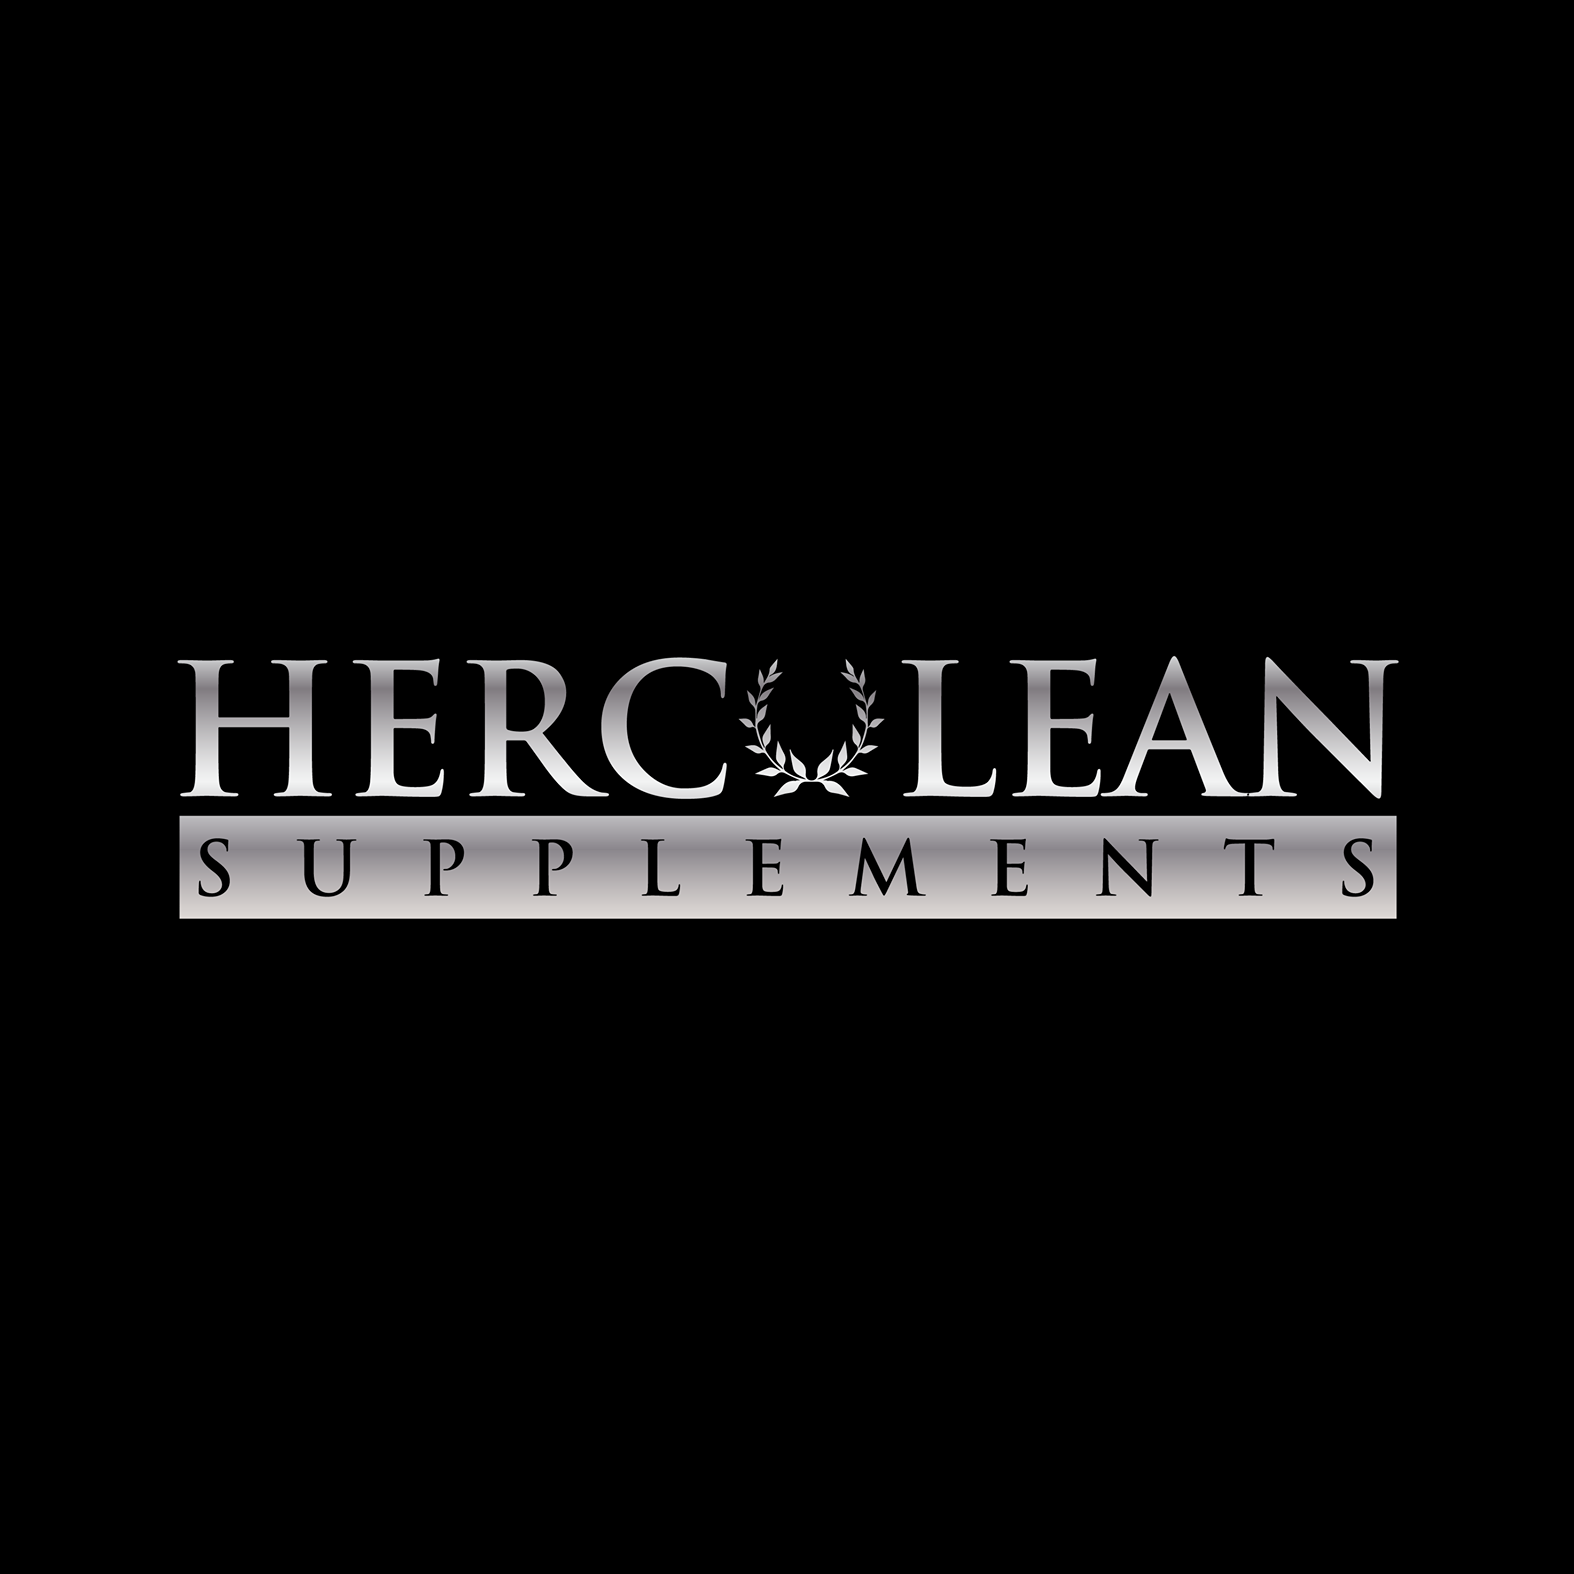 Herculean Supplements - Plano Logo